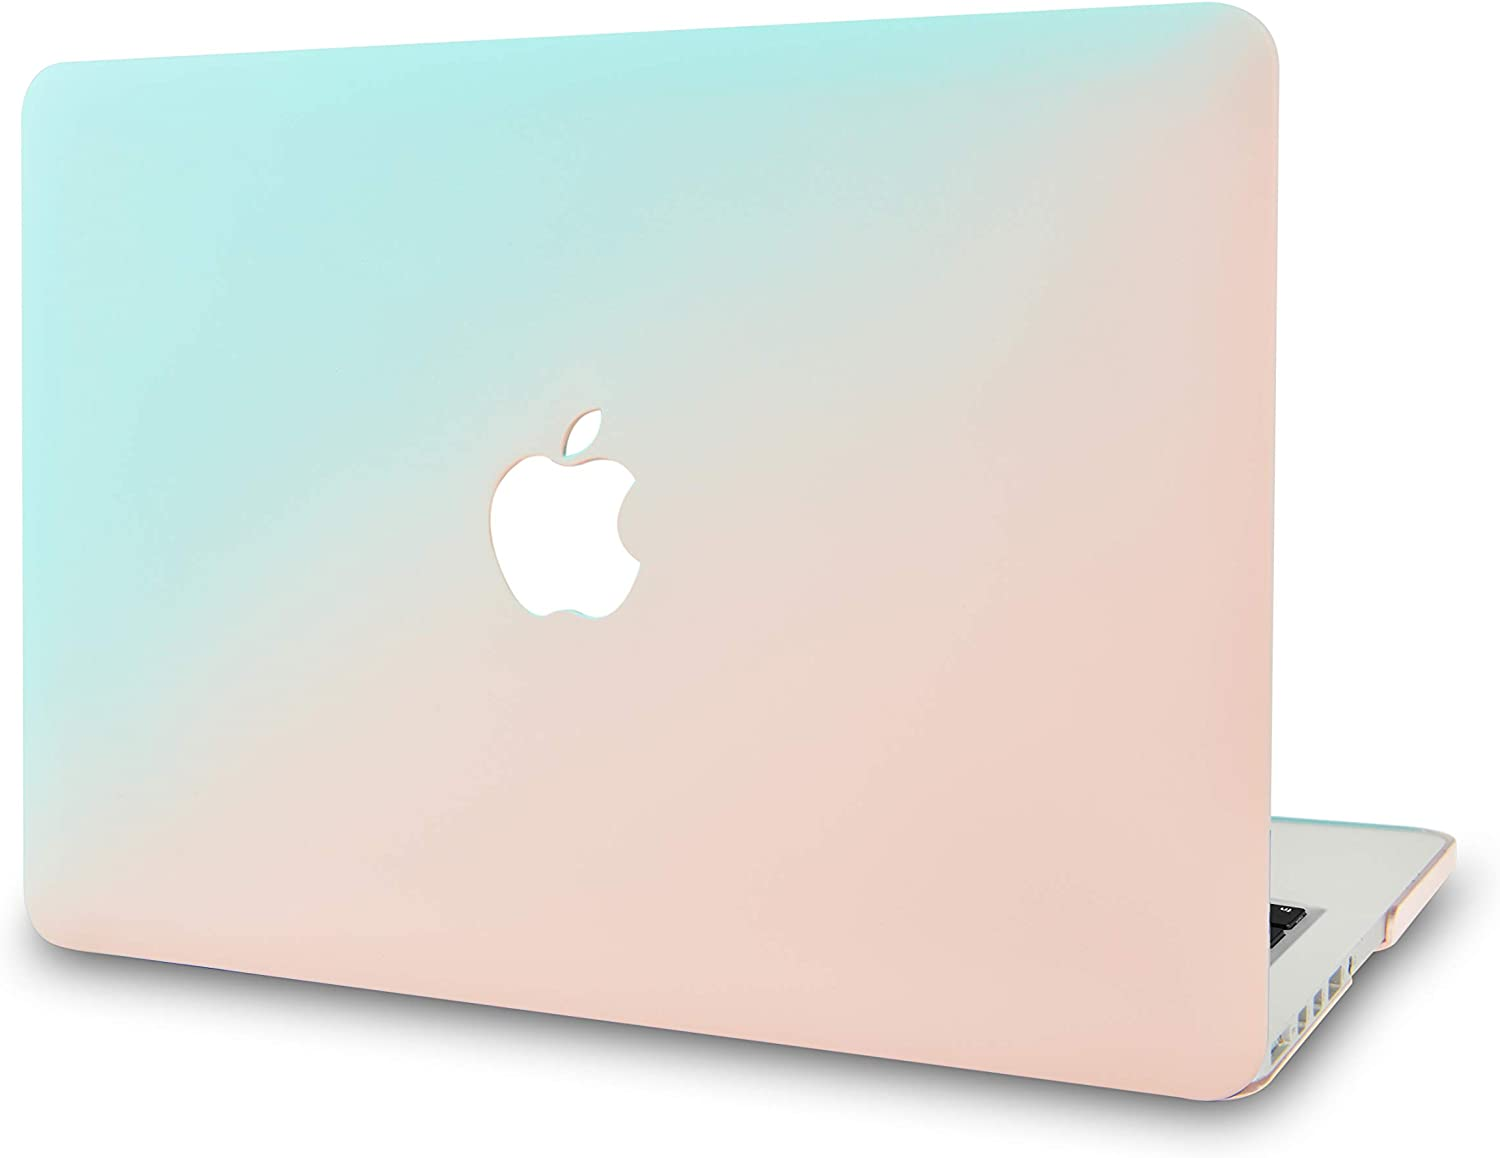 """KECC Laptop Case for MacBook Pro 13"""" (2020/2019/2018/2017/2016) Plastic Hard Shell Cover A2289/A2251/A2159/A1989/A1706/A1708 Touch Bar (Blue Green)"""